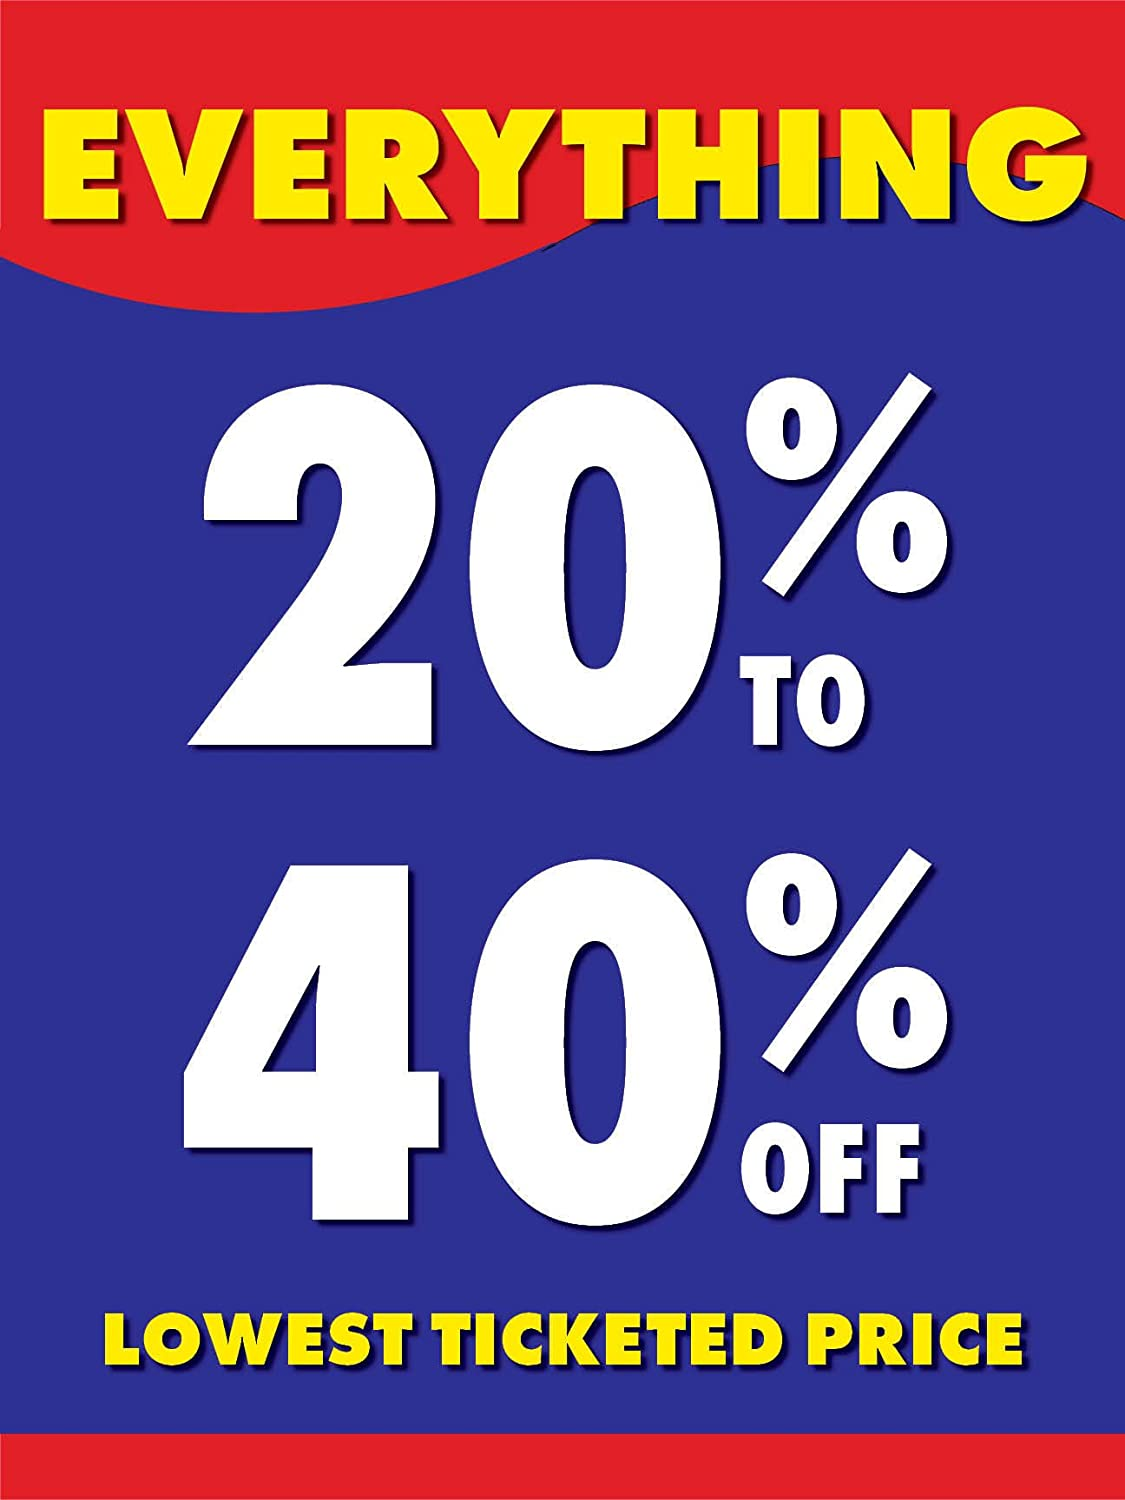 Everything 20% to 40% Off Retail Display Sign, 18w x 24h, 5 Pack